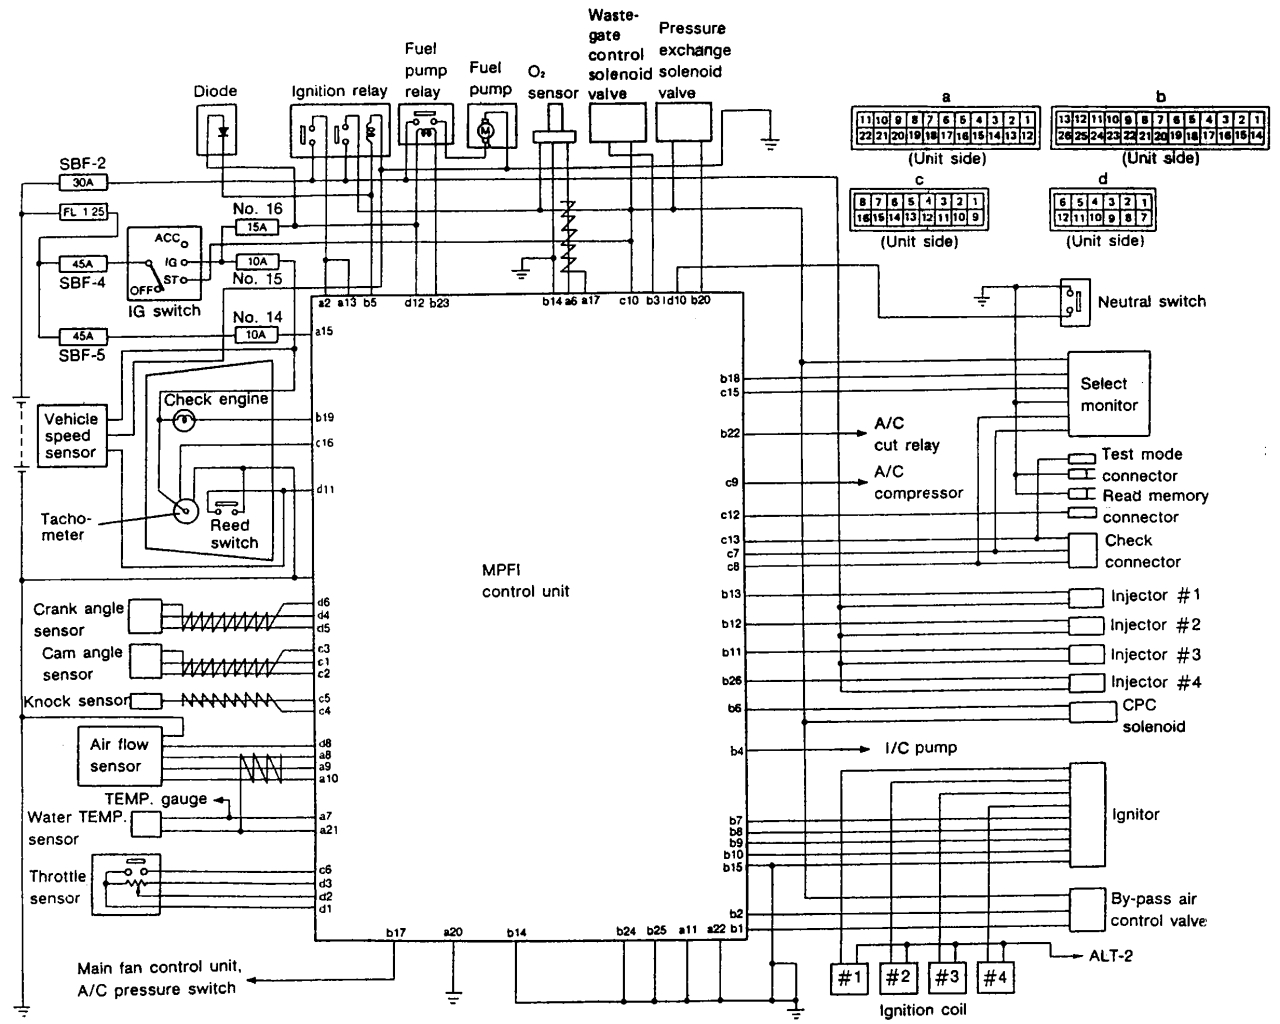 1996 Subaru Legacy Wiring Diagram Just Another Blog 1991 Toyota Tercel Stereo U2022 Rh Aesar Store Altenator